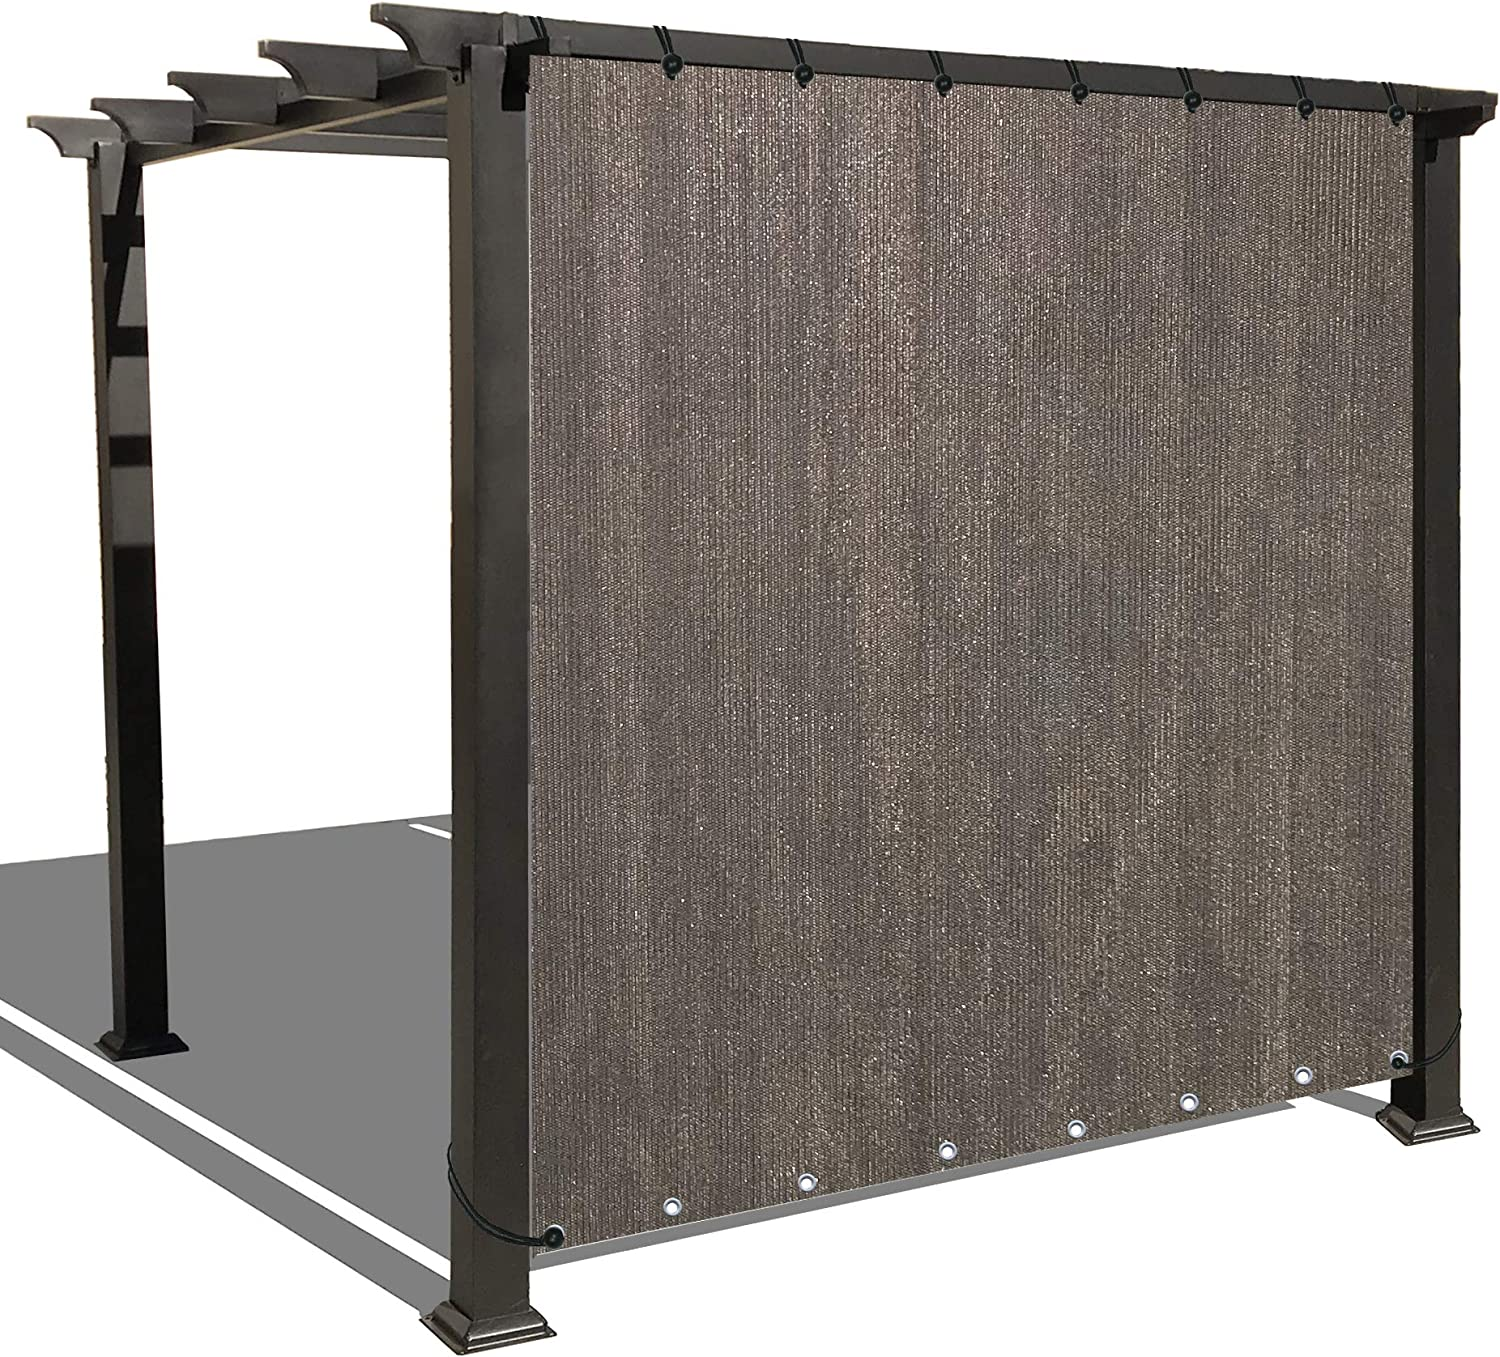 Alion Home Sun Shade Privacy Panel with Grommets on 2 Sides for Patio, Awning, Window, Pergola or Gazebo – Mocha Brown 10 x 12